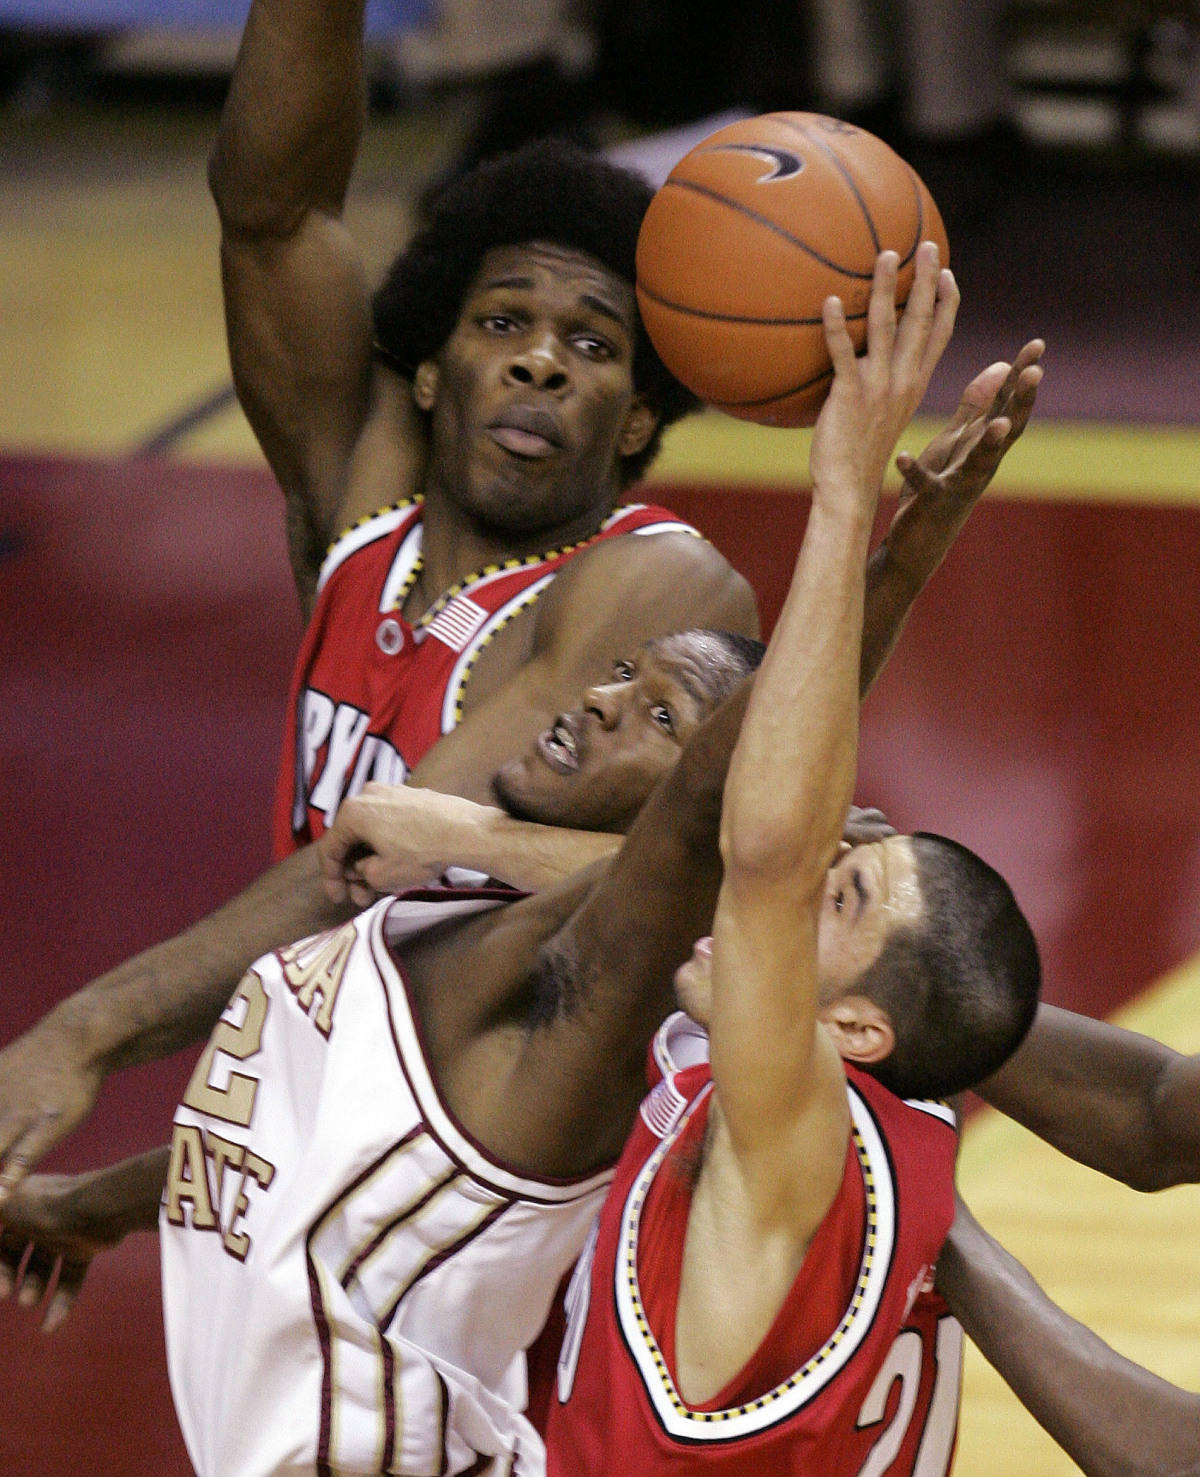 Florida State's Al Thornton, center, battles Maryland's Bambale Osby, top, and Greivis Vasquez, bottom, for a first-half rebound during a college basketball game, Tuesday, Jan. 30, 2007, in Tallahassee, Fla.(AP Photo/Phil Coale)